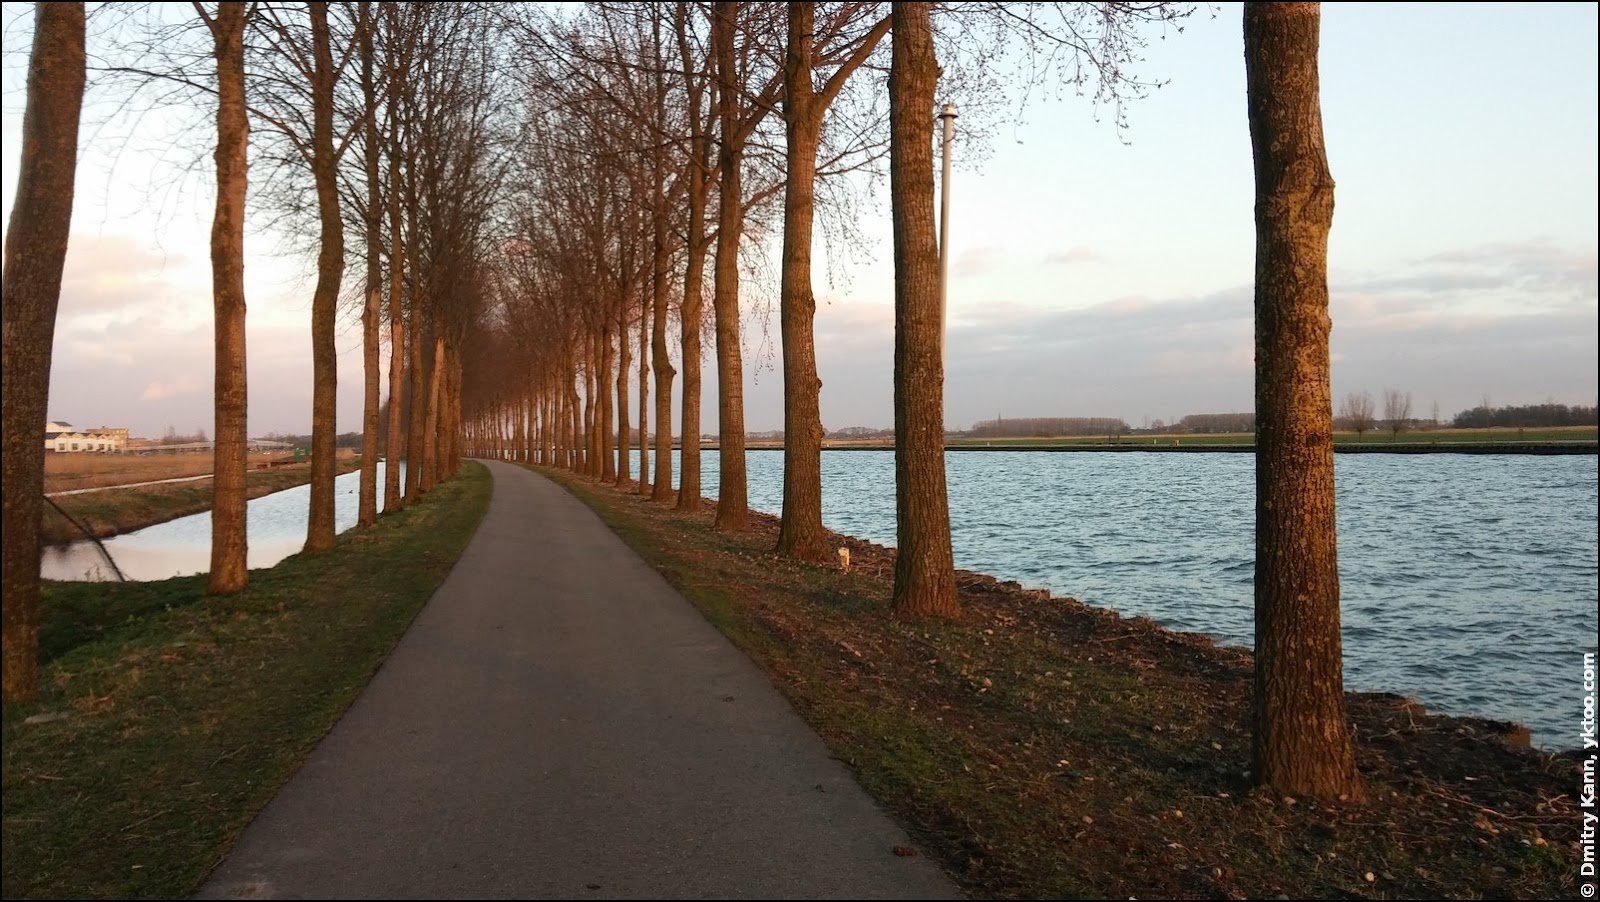 March. The Amsterdam-Rijnkanaal is on the right.